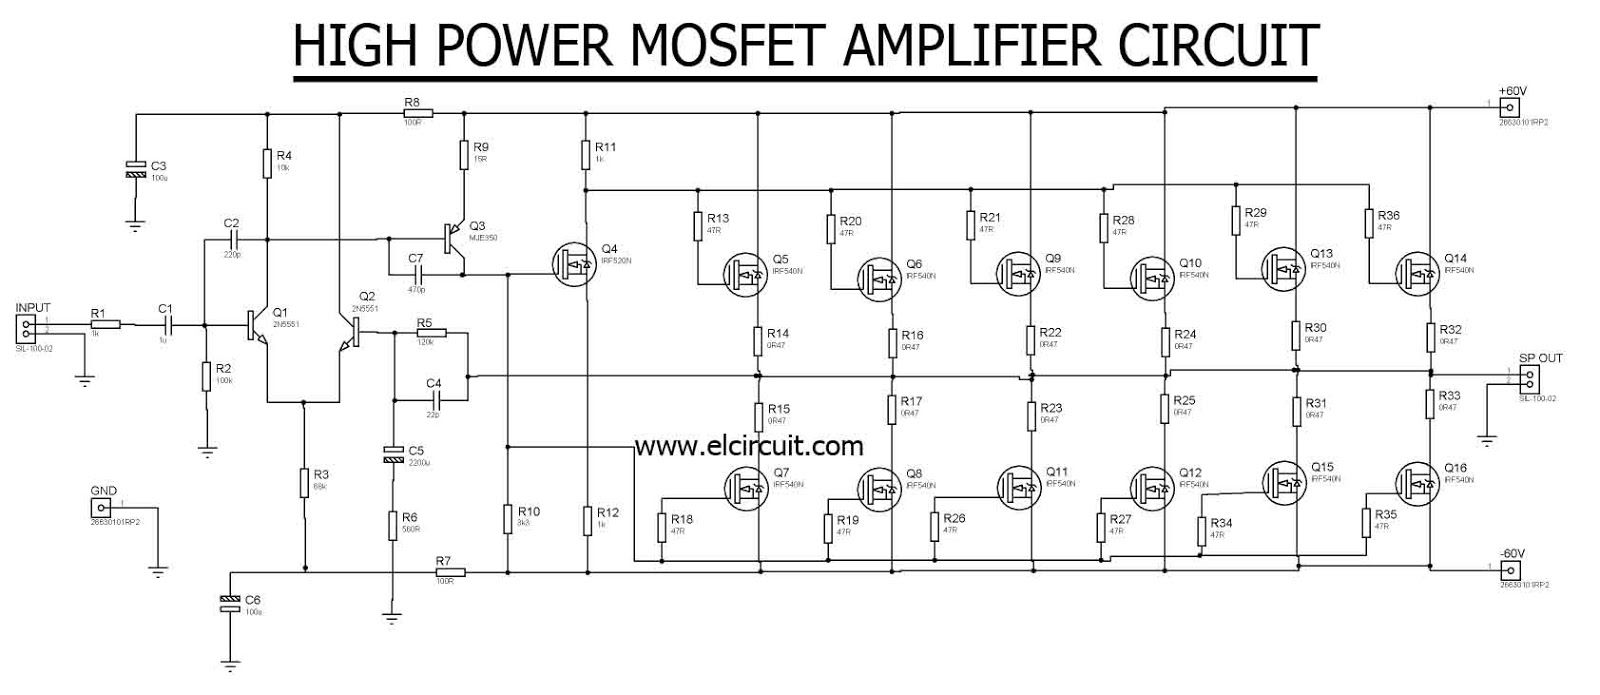 High Power Mosfet Amplifier Irf540n Amp Circuit Diagram Easy Hifi Ocl 150w Rms By Transistor Electronic Projects